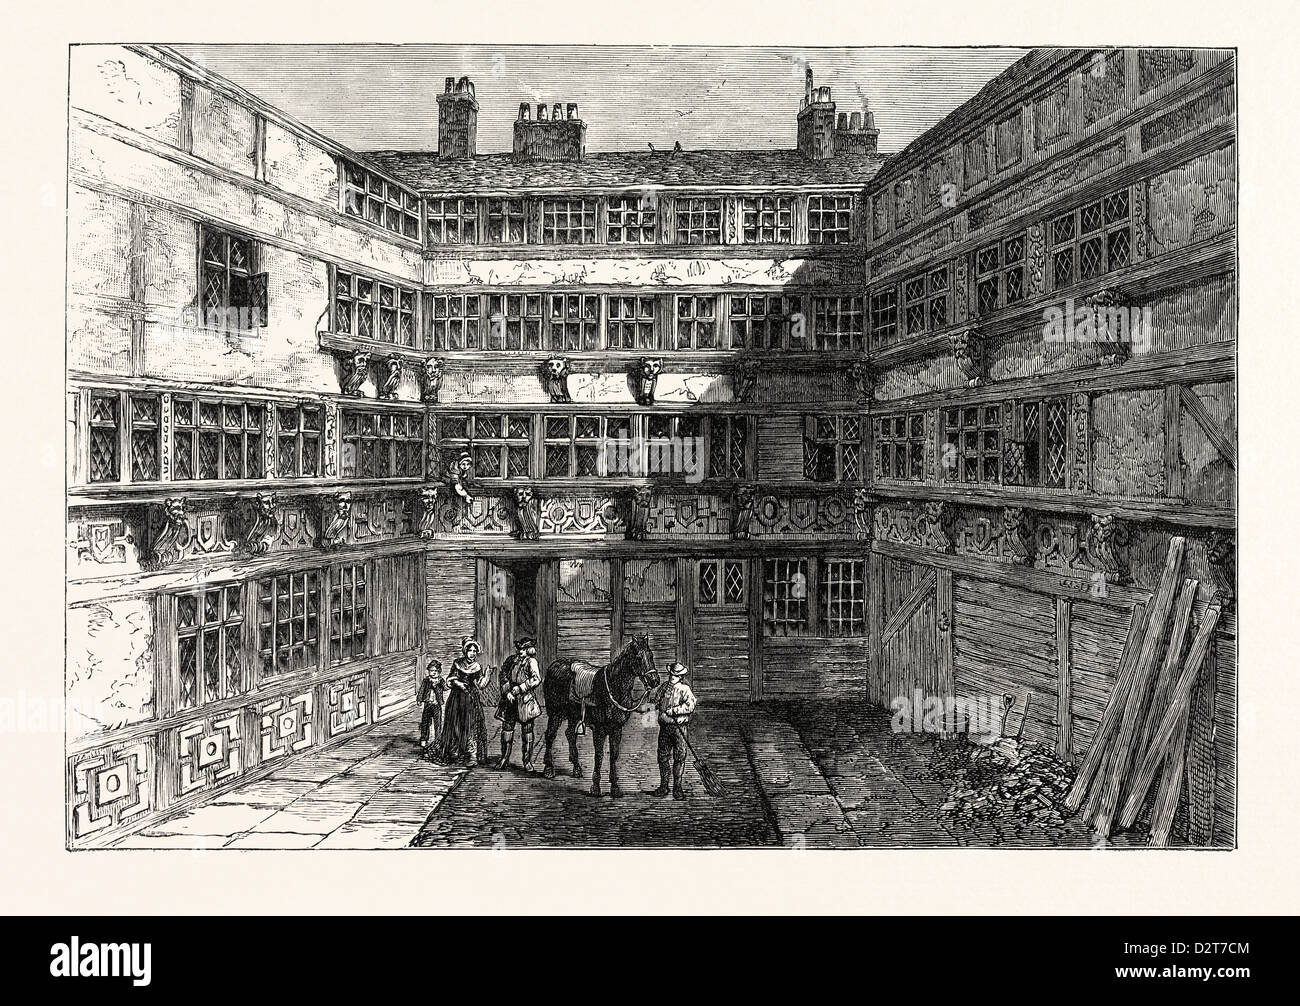 SIR R. WHITTINGTON'S HOUSE CRUTCHED FRIARS 1803 LONDON - Stock Image